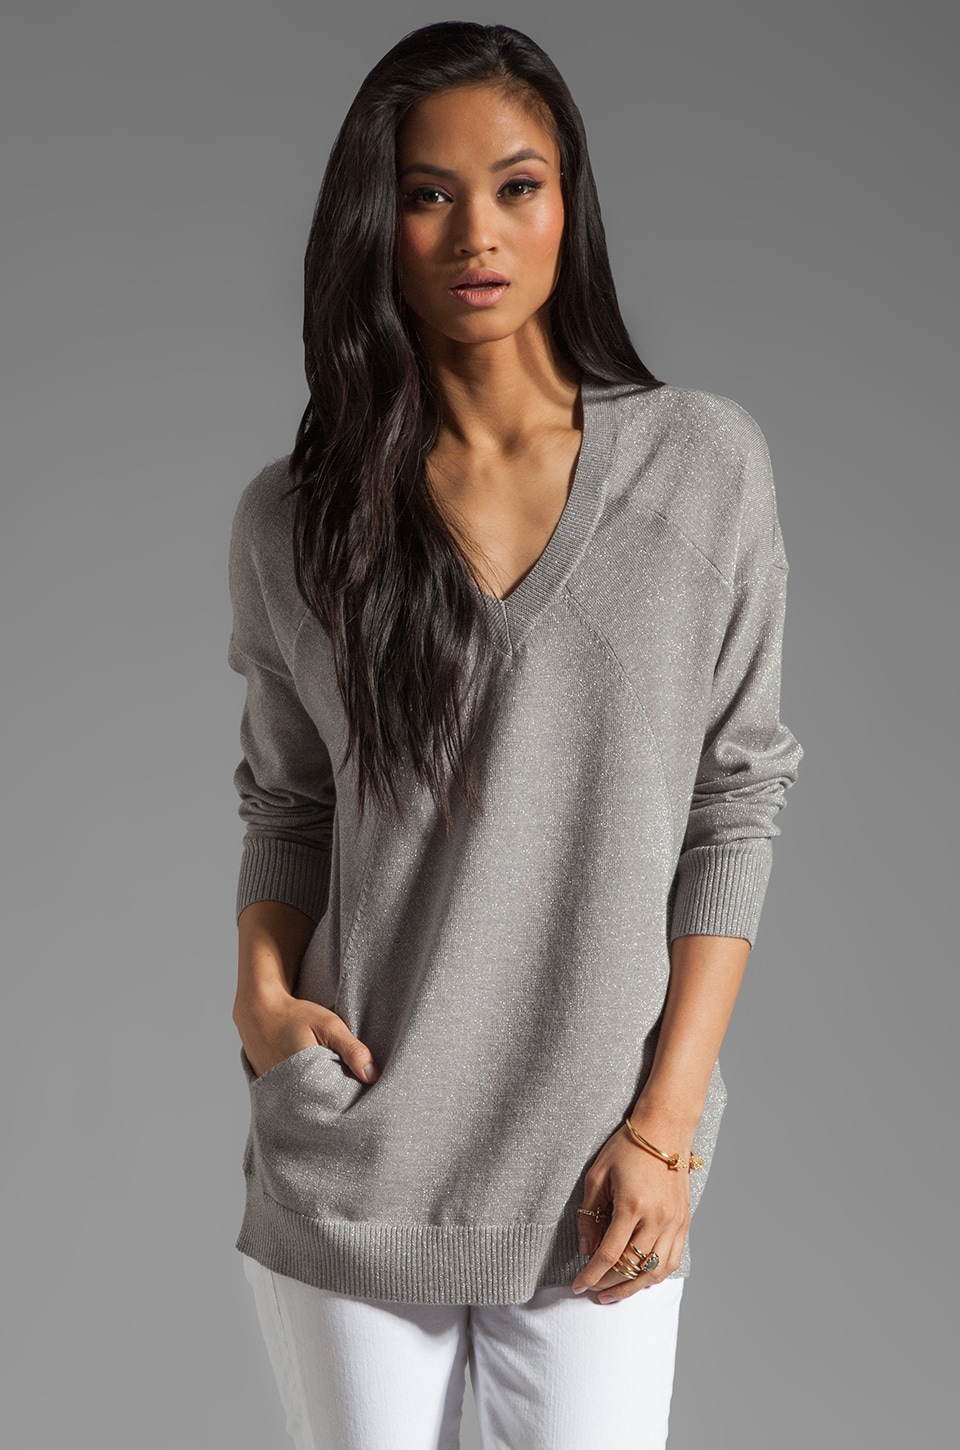 Haute Hippie Sweatshirt with Pockets in Light Heather Grey/Silver